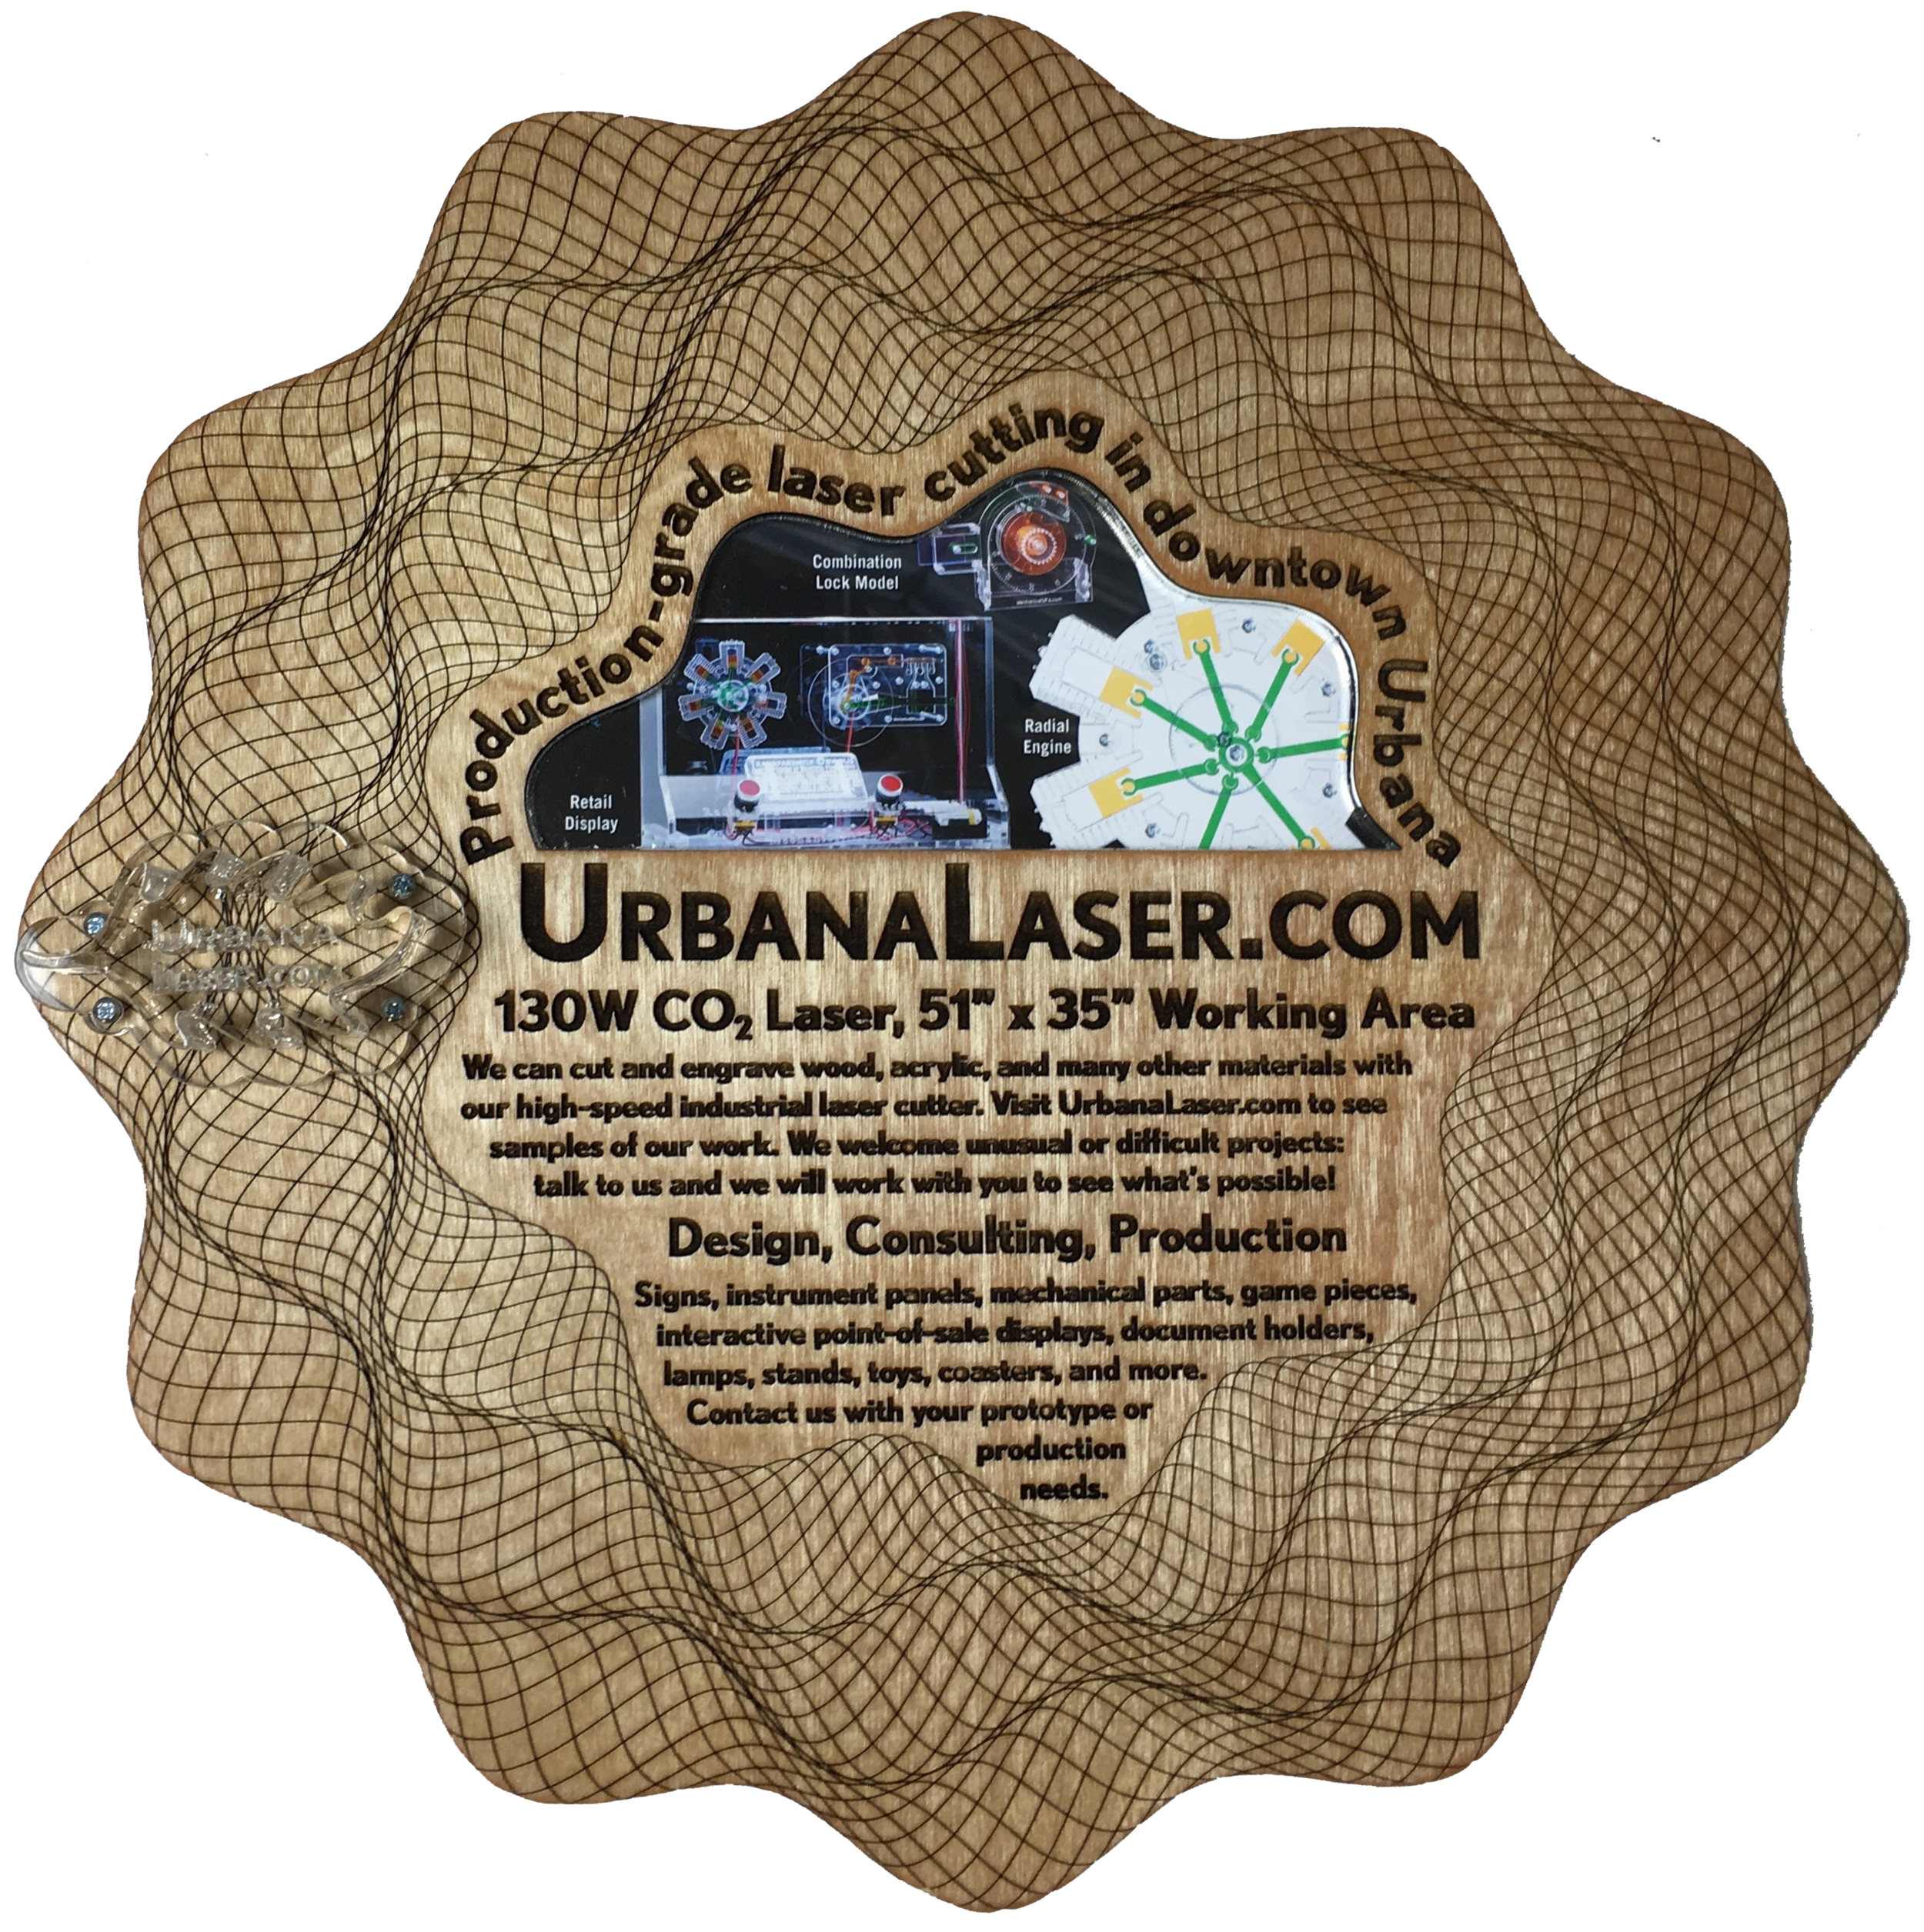 "UrbanaLaser.com  is an offshoot of my work on  mechanicalgifs.com . Under the Urbana Laser umbrella we offer laser cutting services to the local (Urbana-Champaign, Illinois) community using our large-format 130W, 51"" x 35"" working area CO2 laser cutter."